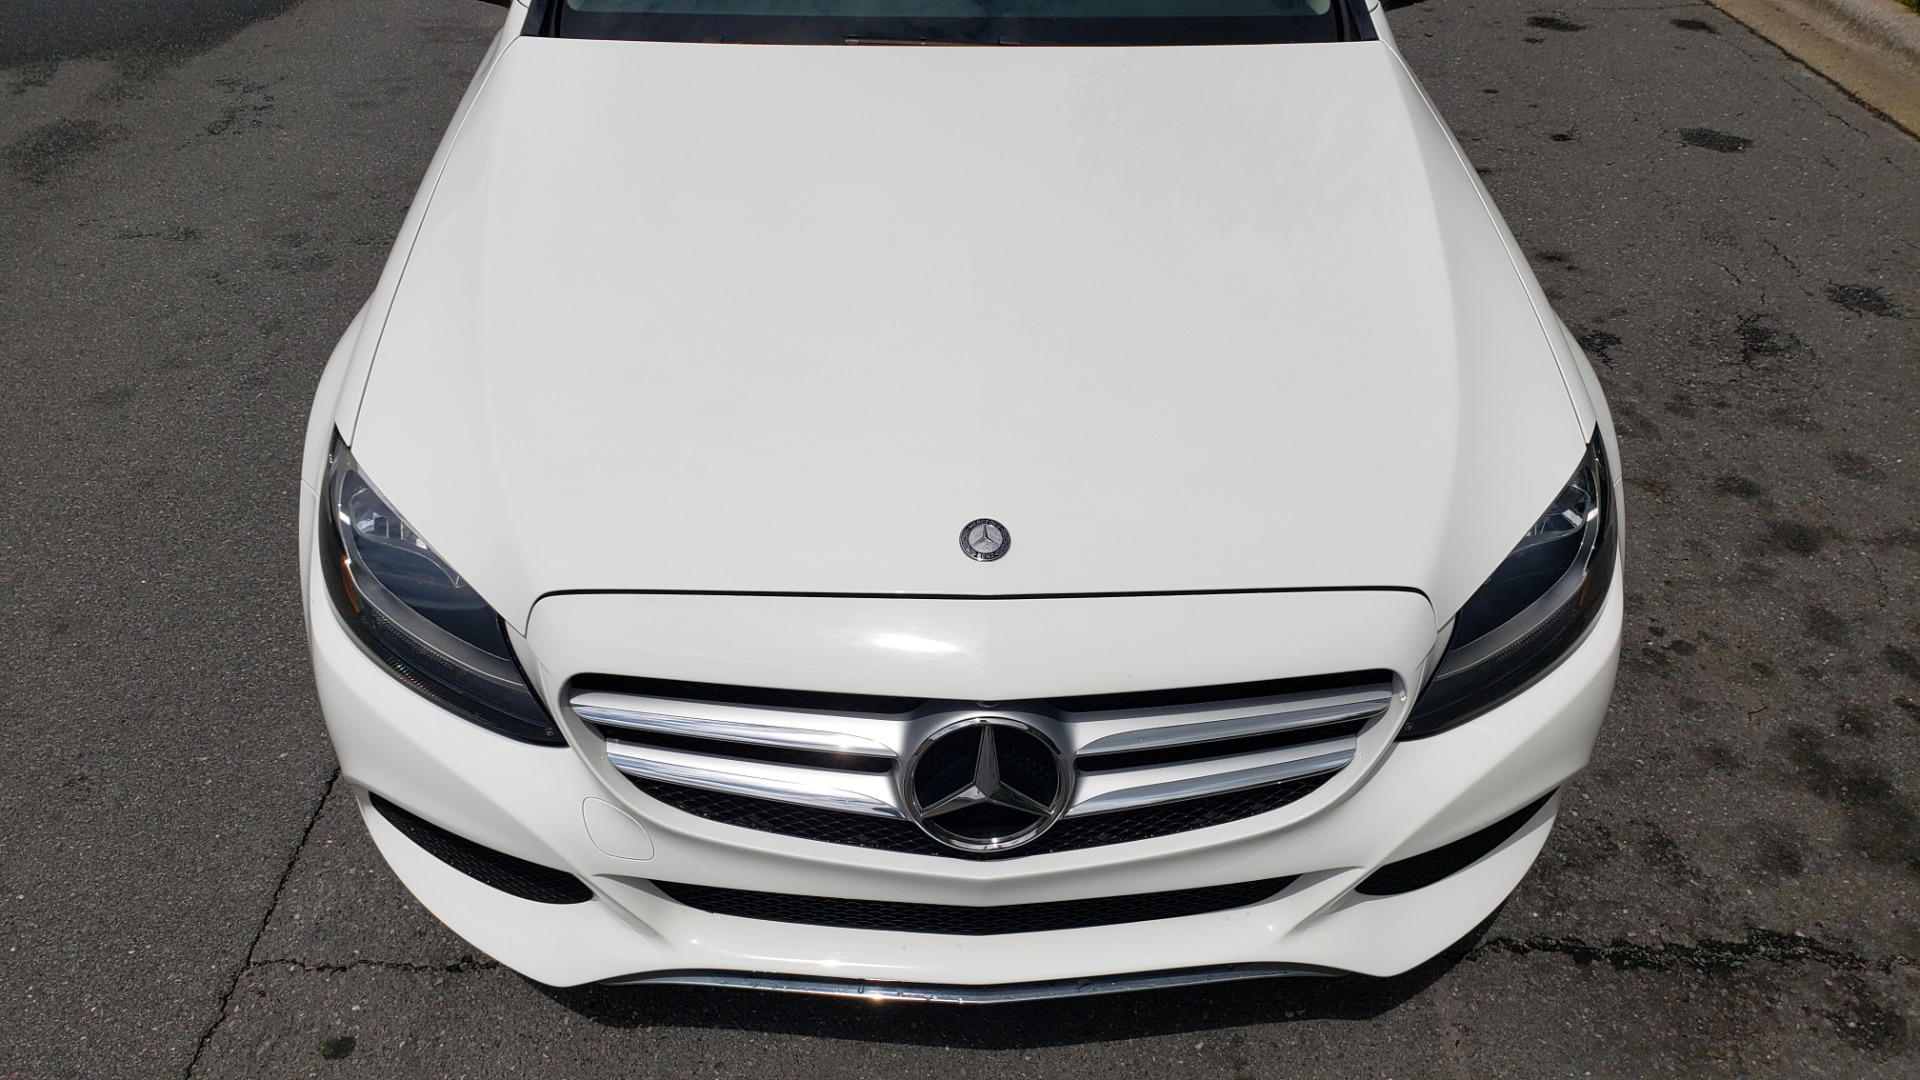 Used 2017 Mercedes-Benz C-Class C 300 PREMIUM / NAV / PANO-ROOF / HTD STS / REARVIEW for sale Sold at Formula Imports in Charlotte NC 28227 12